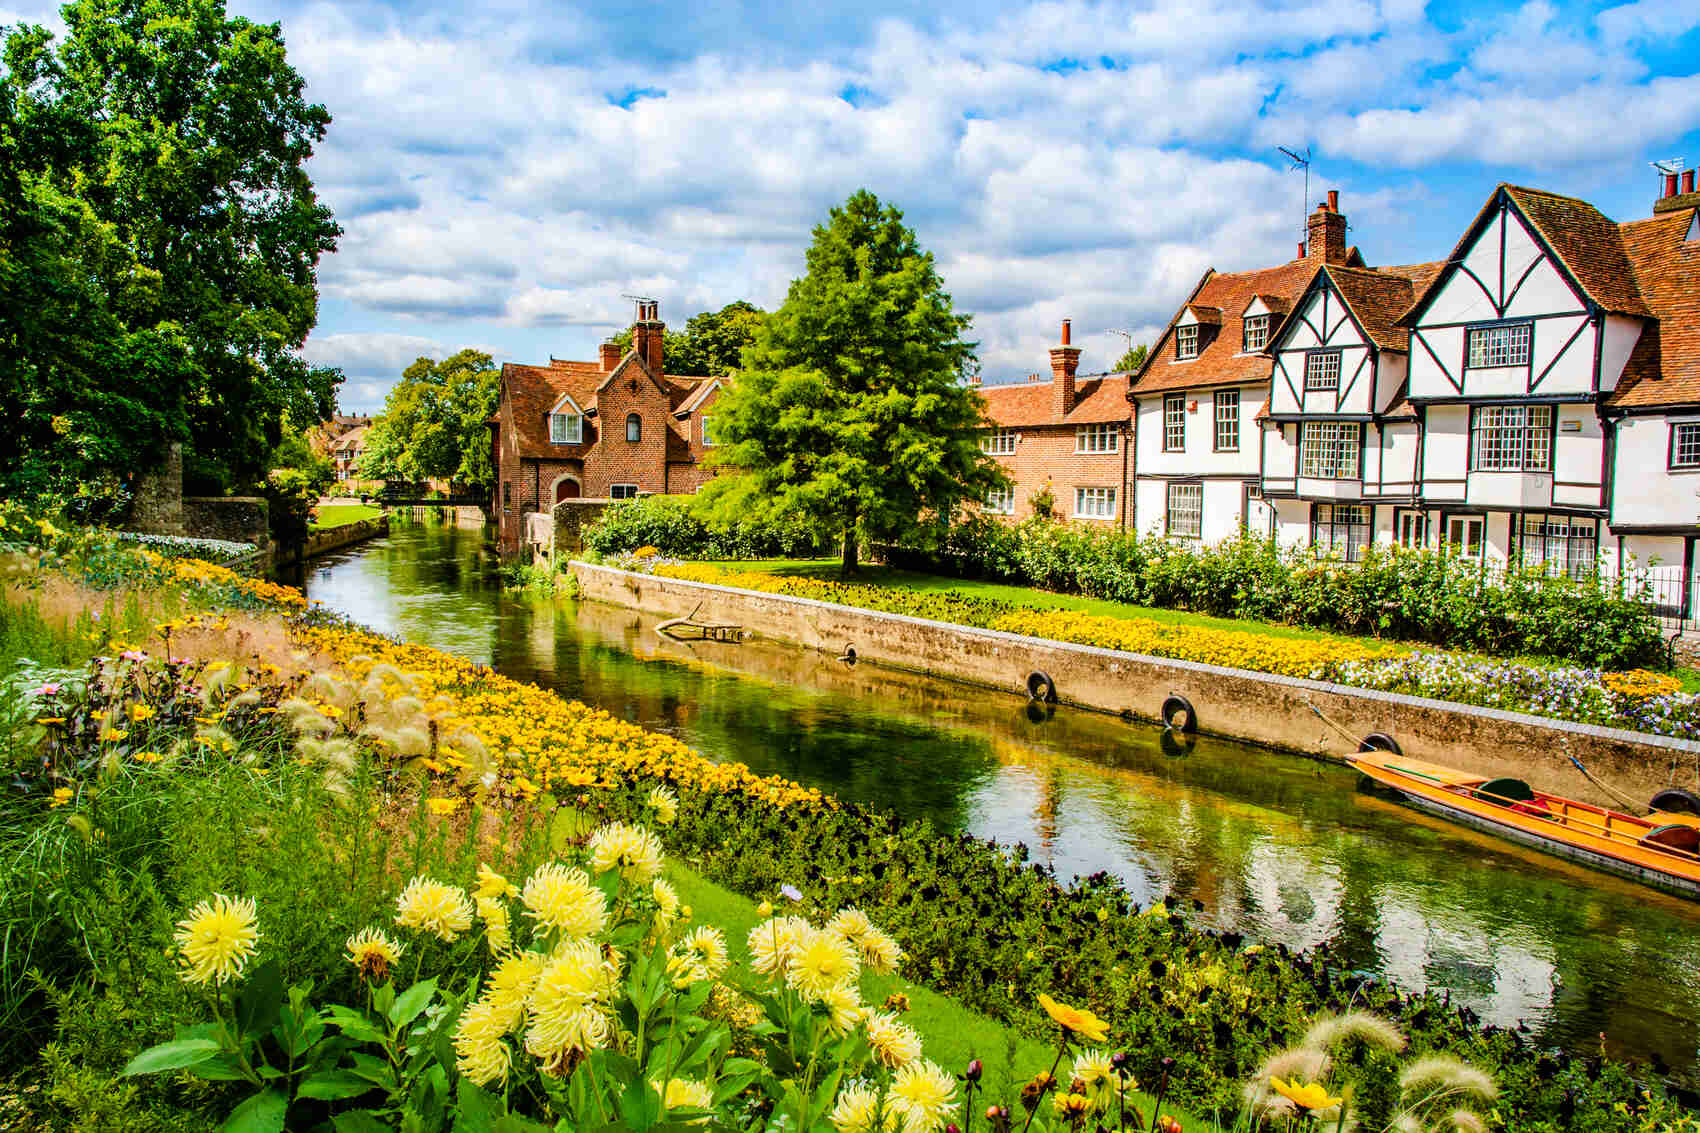 Landscape-of-the-Great-Stour-river-near-Westgate-Gardens-Canterbury-Kent-UK